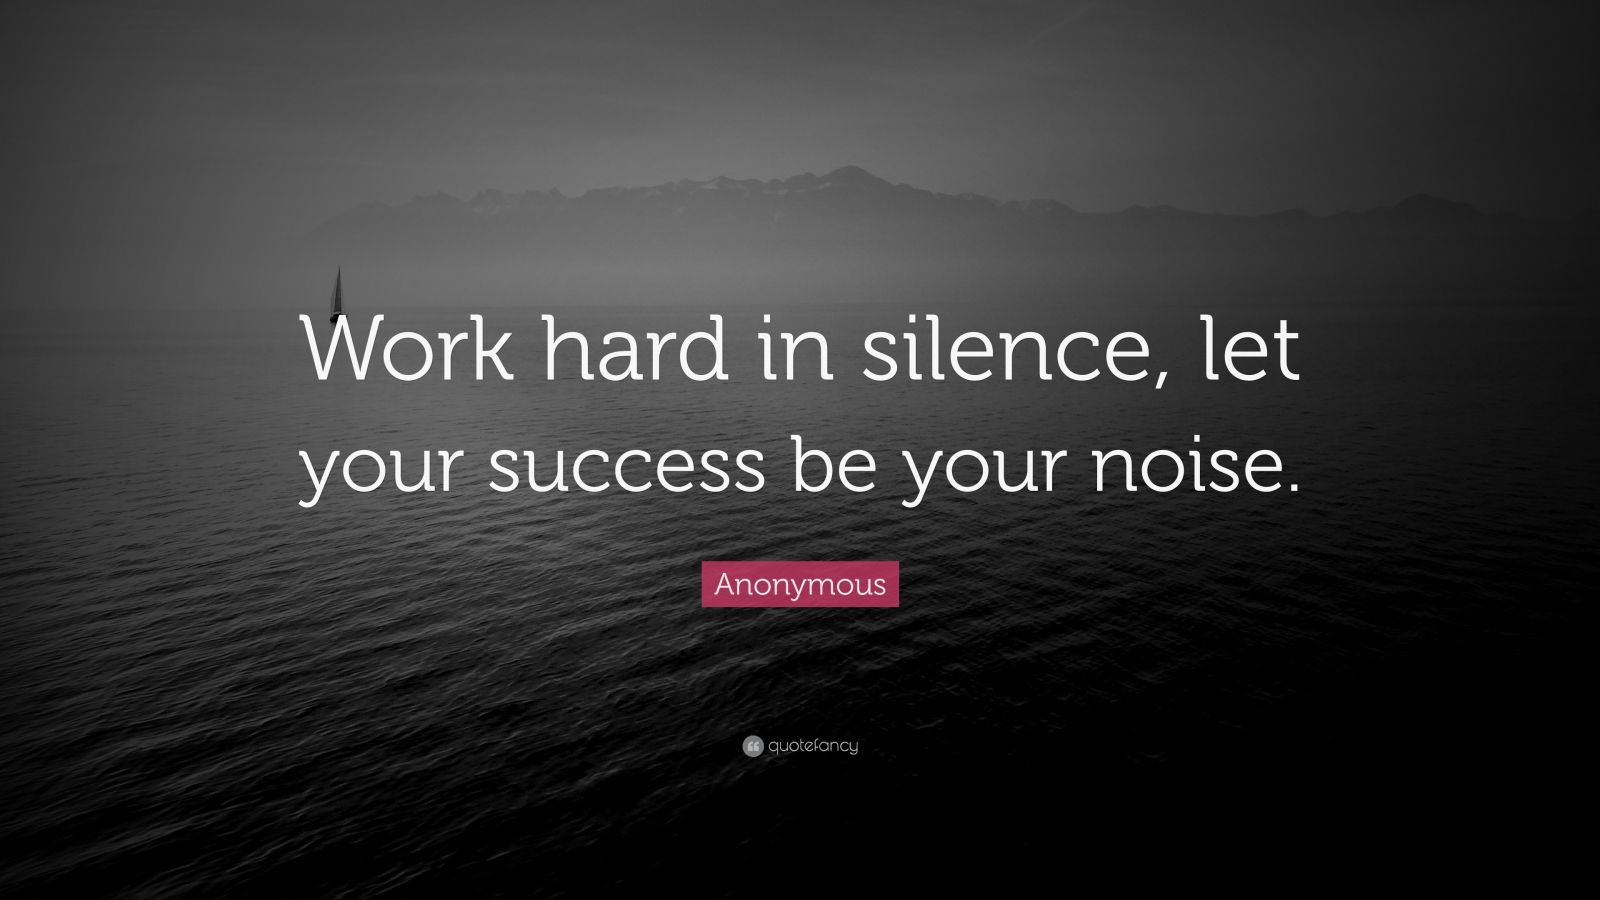 Bible Quote Wallpapers Mac Frank Ocean Quote Work Hard In Silence Let Your Success